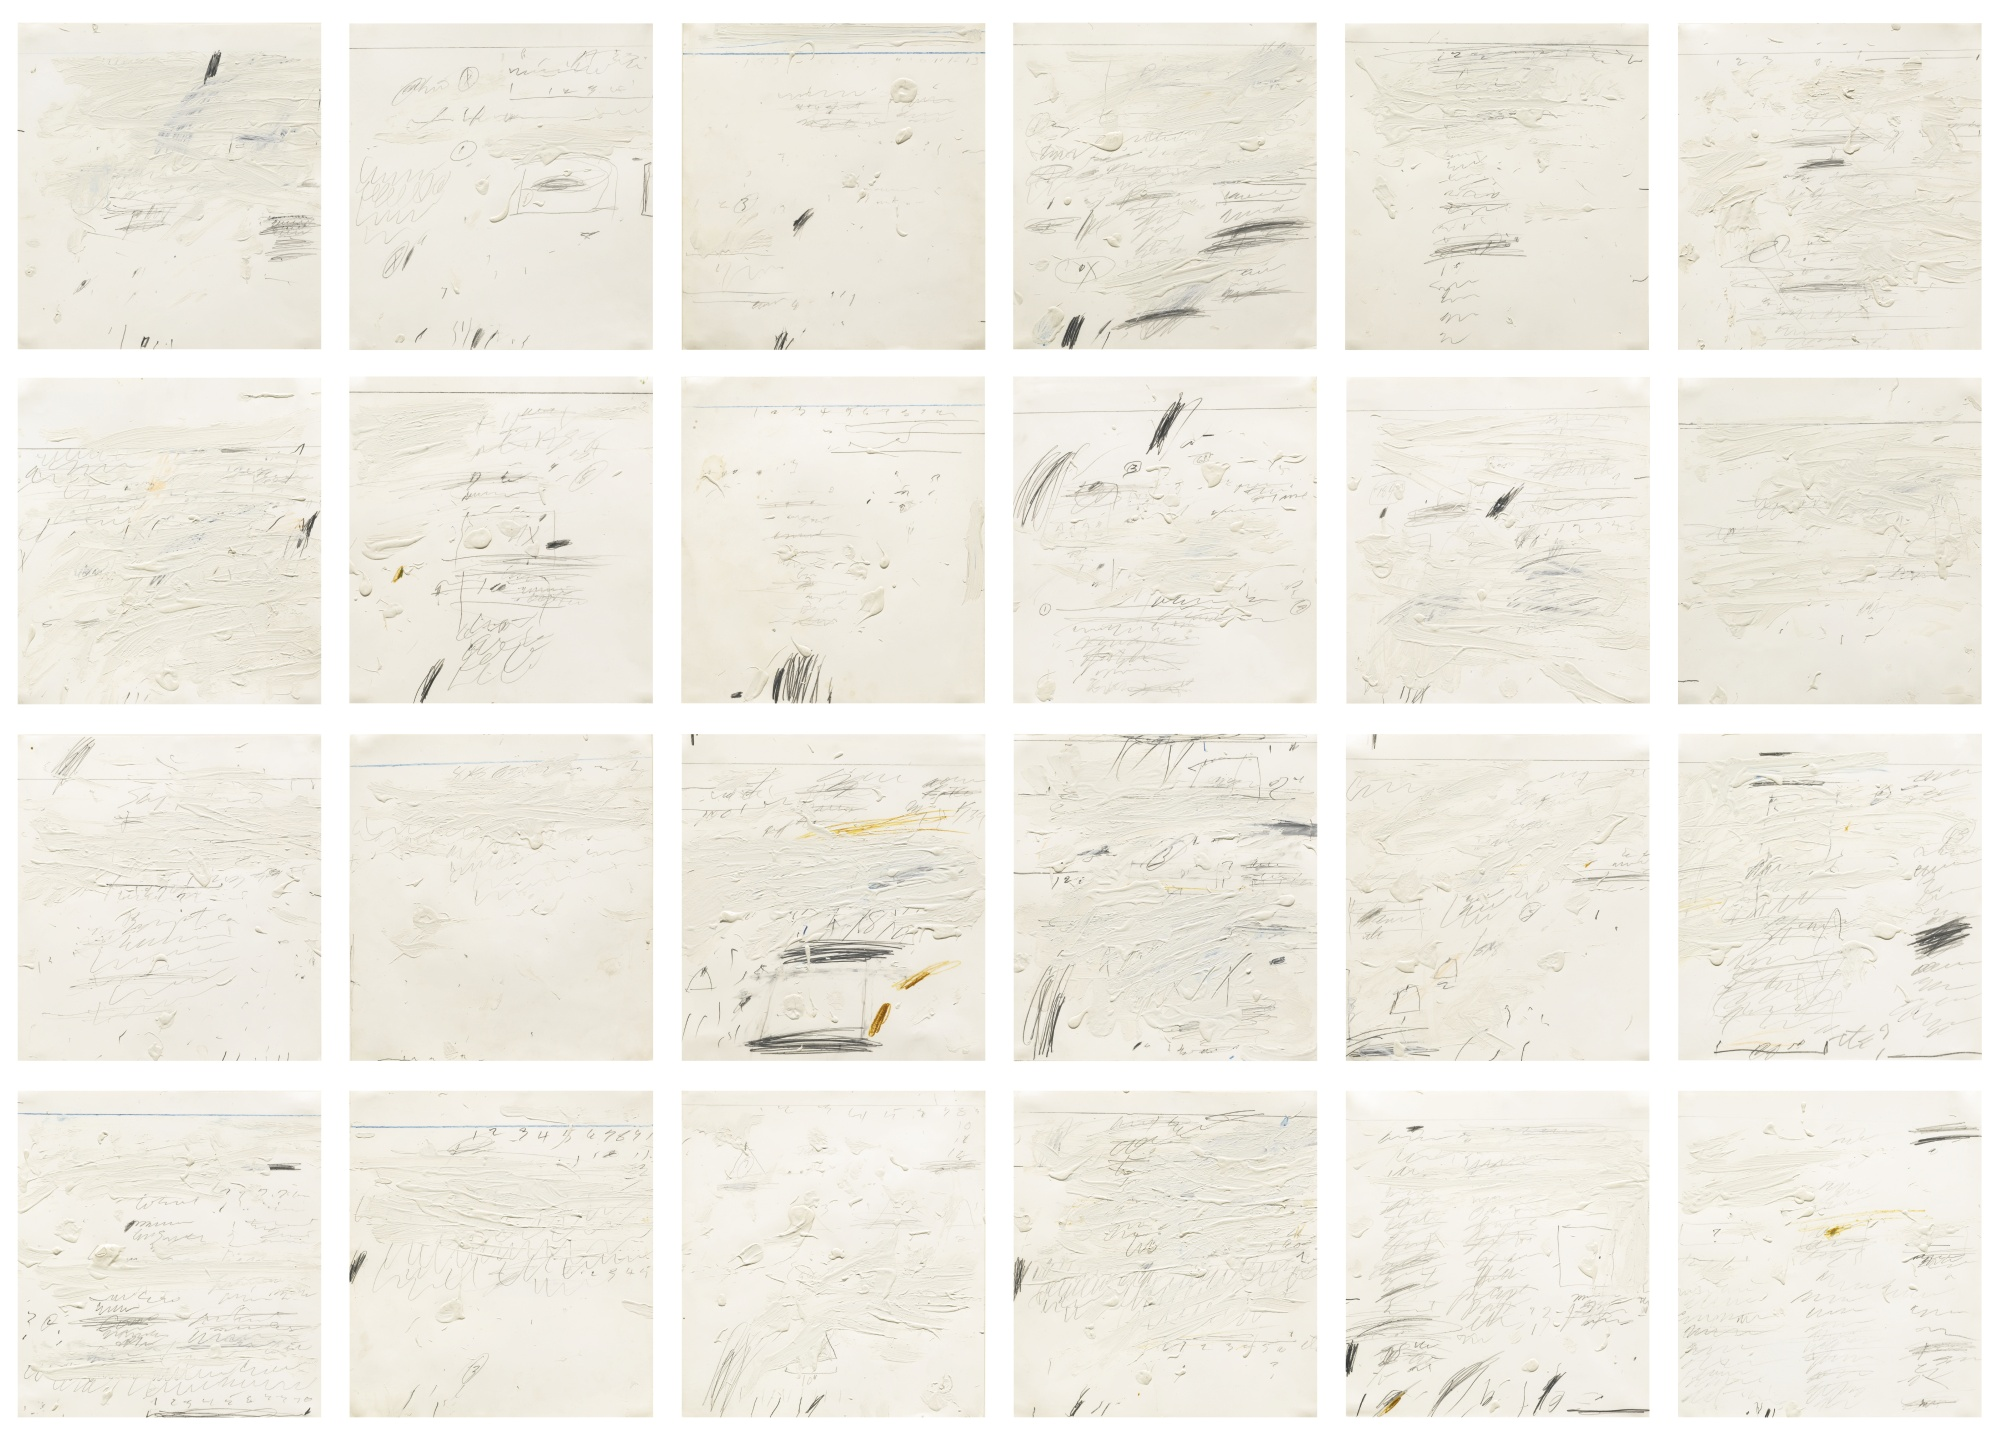 lgee-cy-twombly-poems-to-the-sea